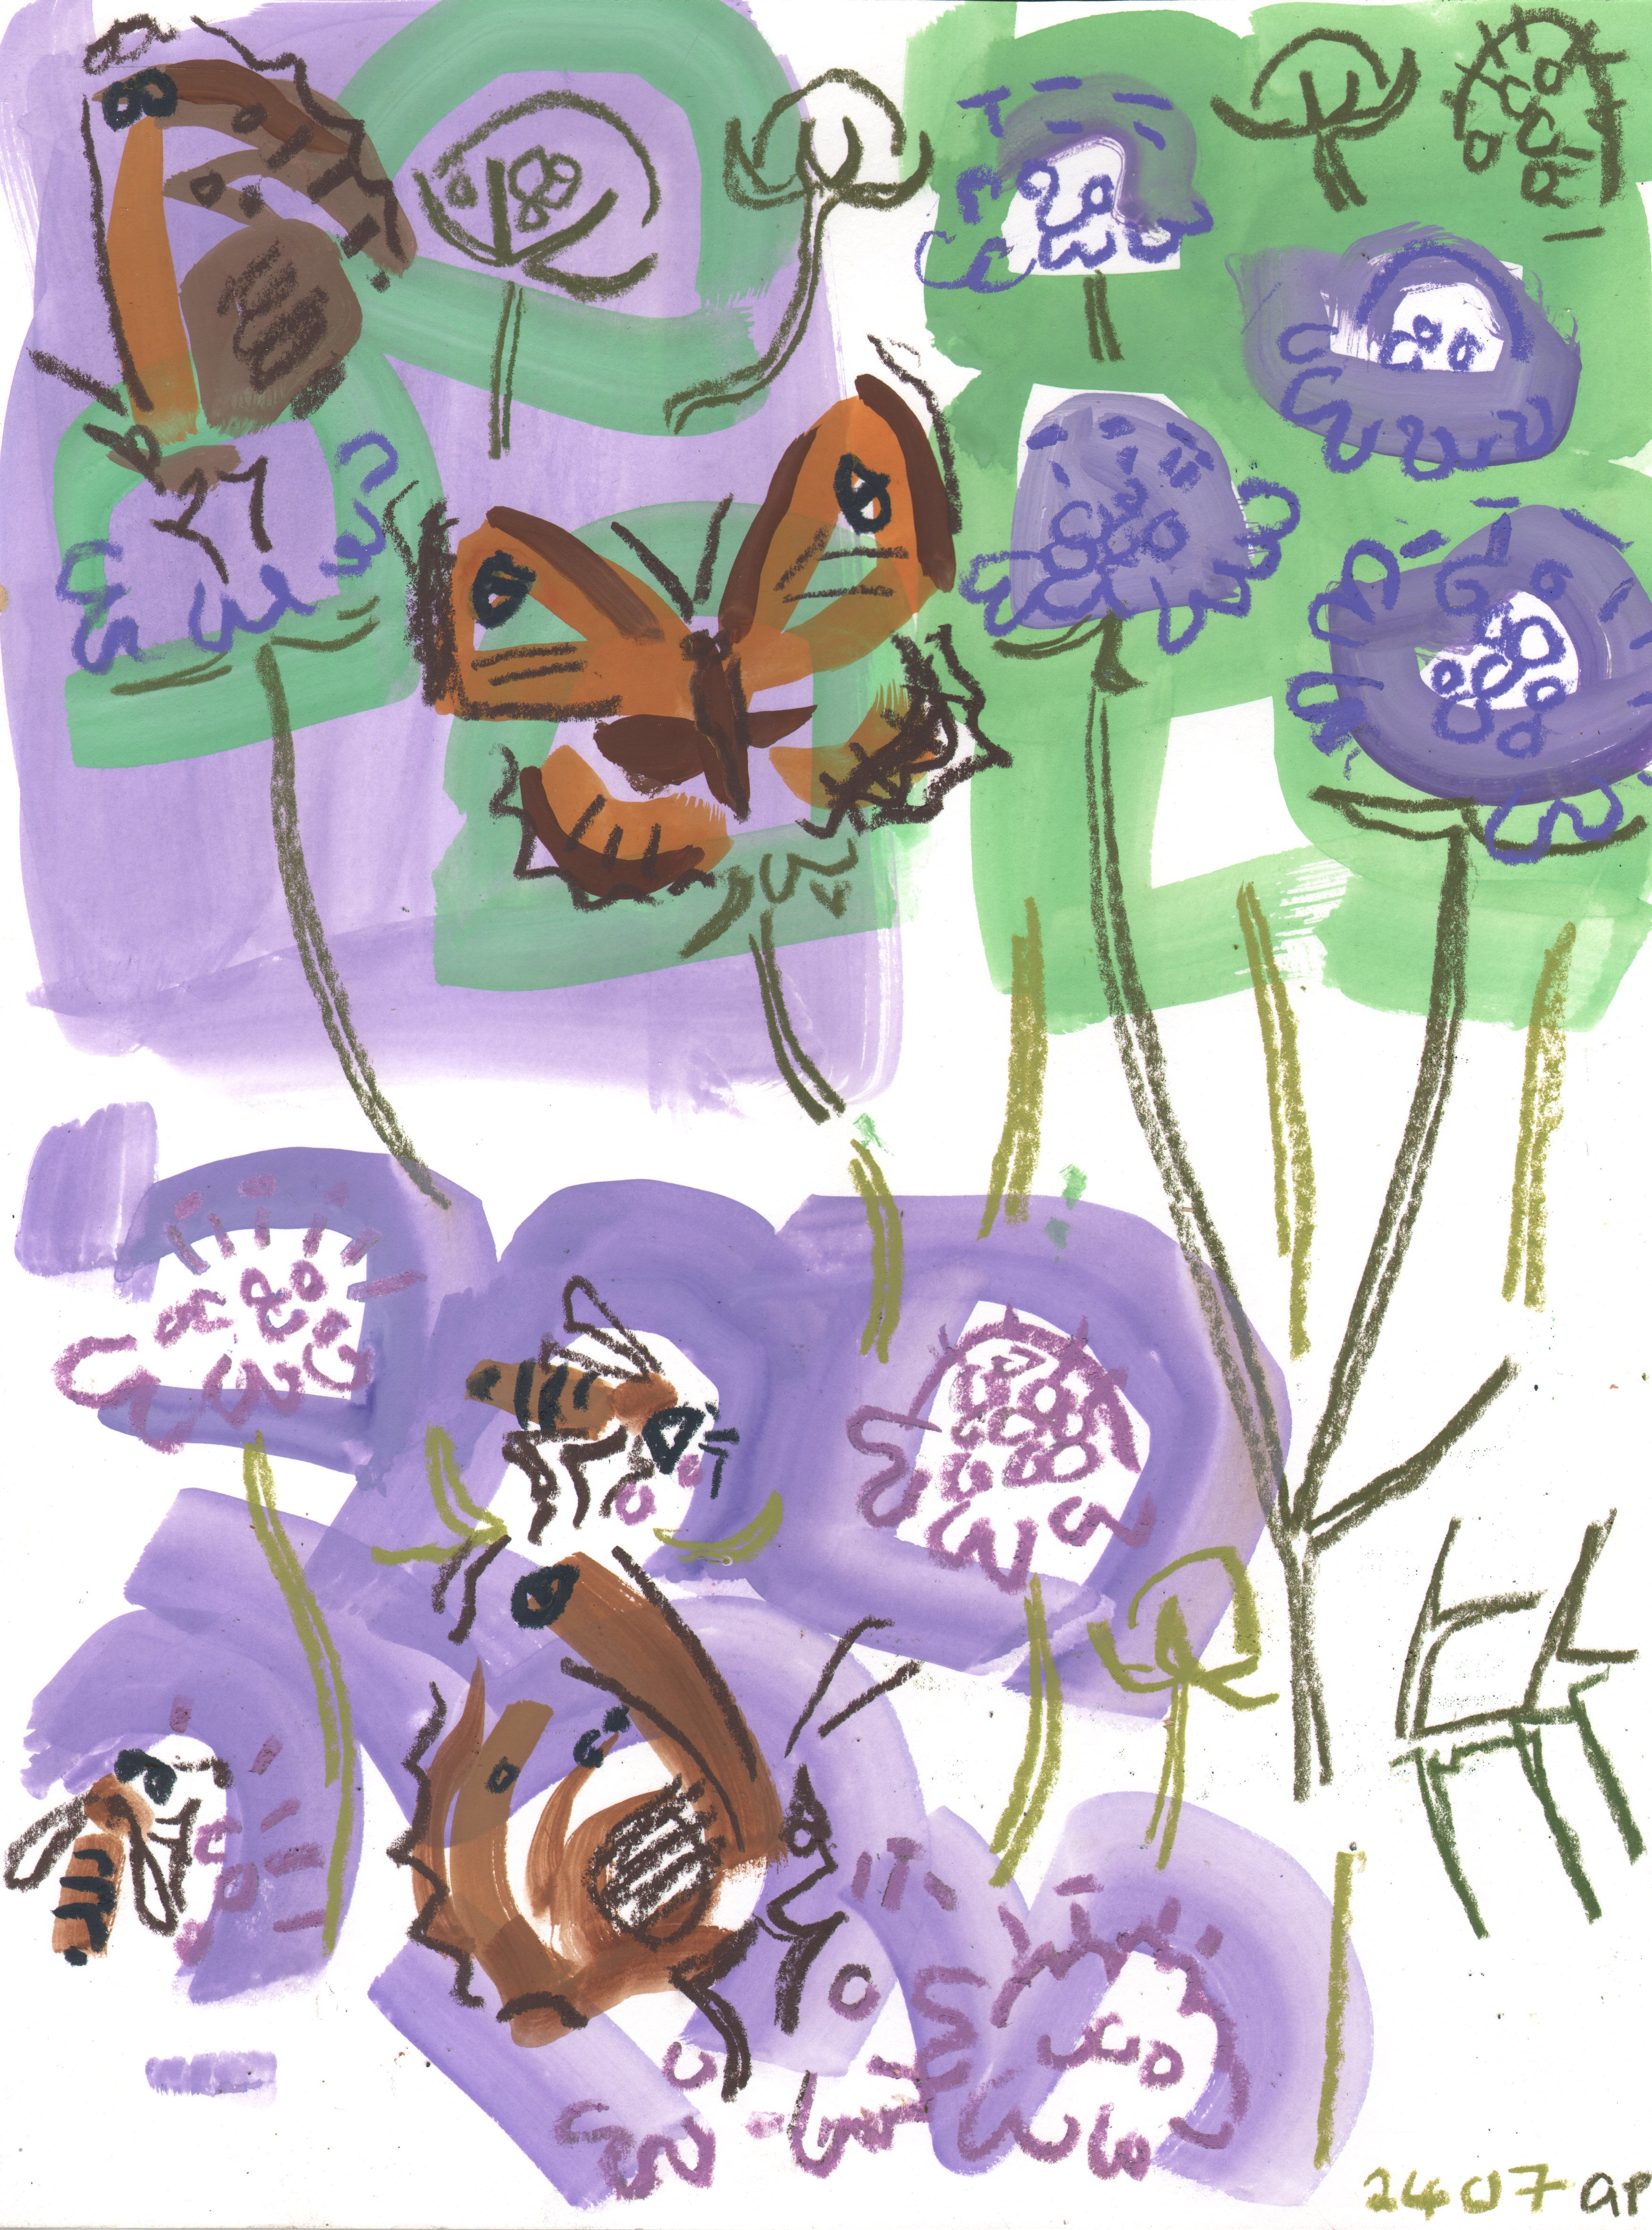 Gatekeepers and Bees on Scabious